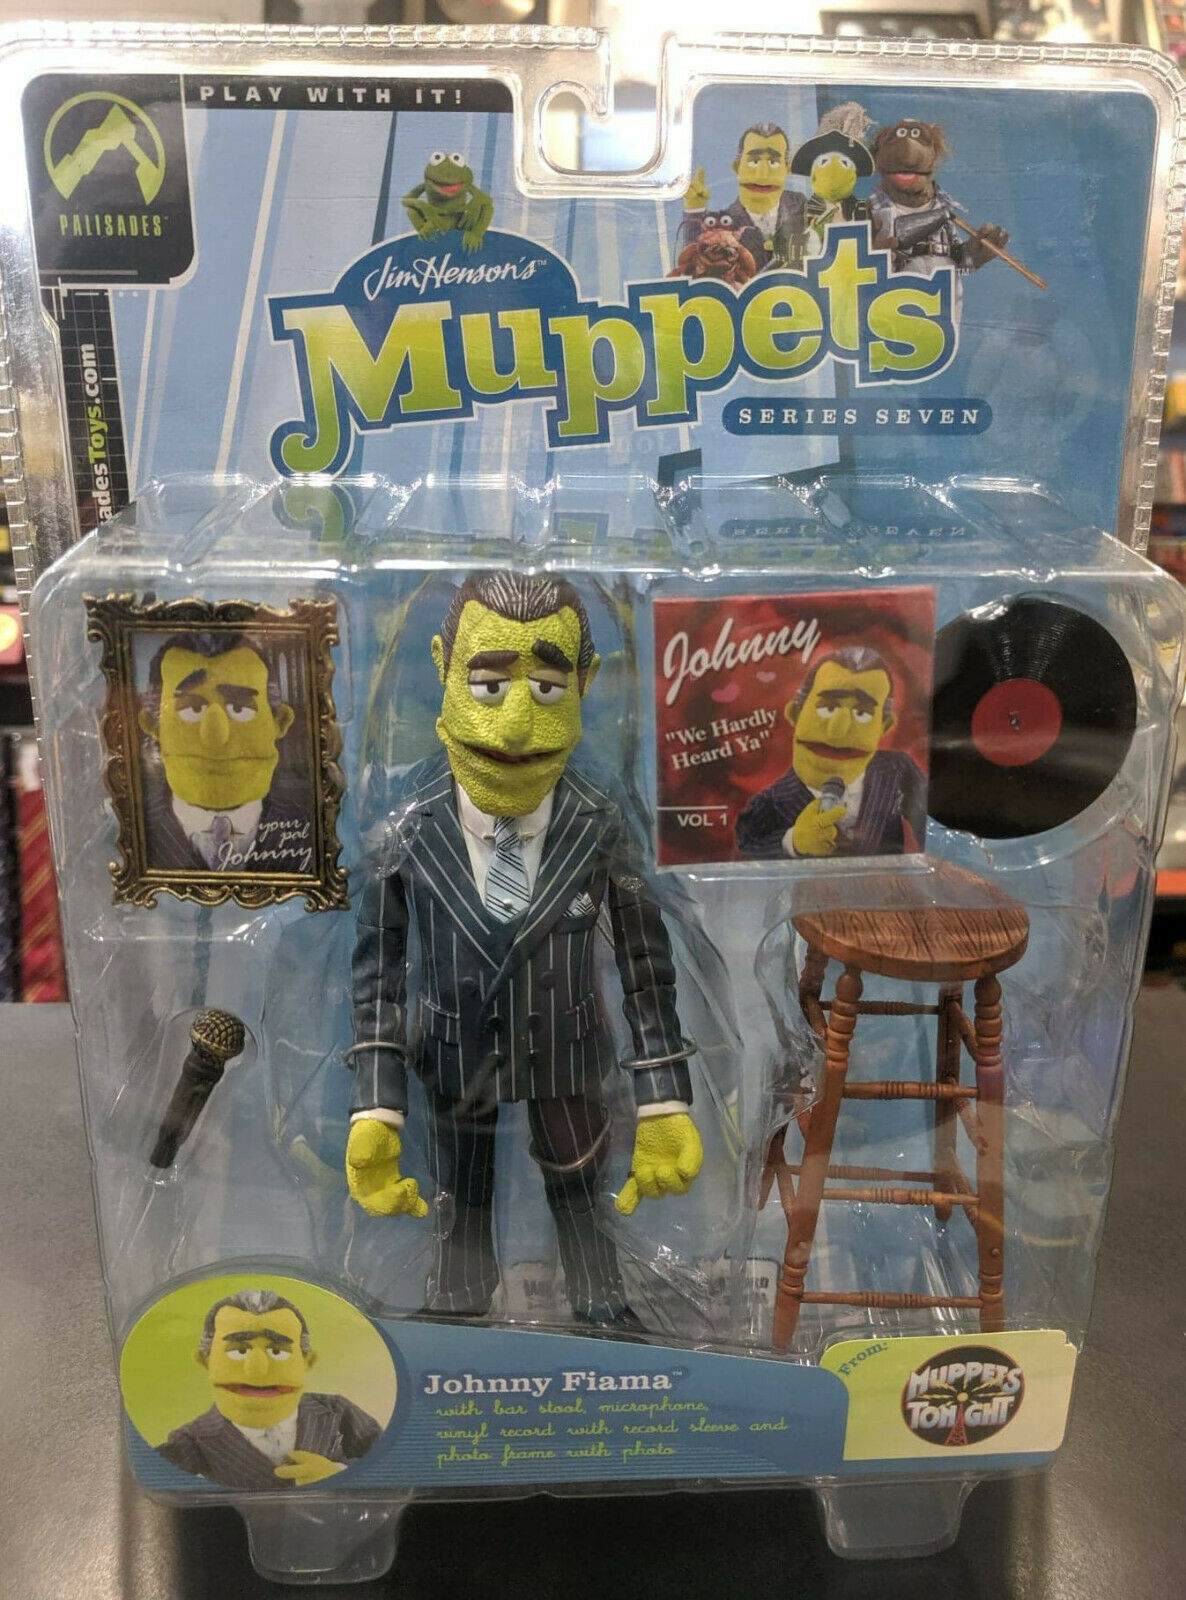 MUPPETS Palisades JOHNY FIAMA - SIGNATure Action Figur Serie 7 MUPPETS TONGEN